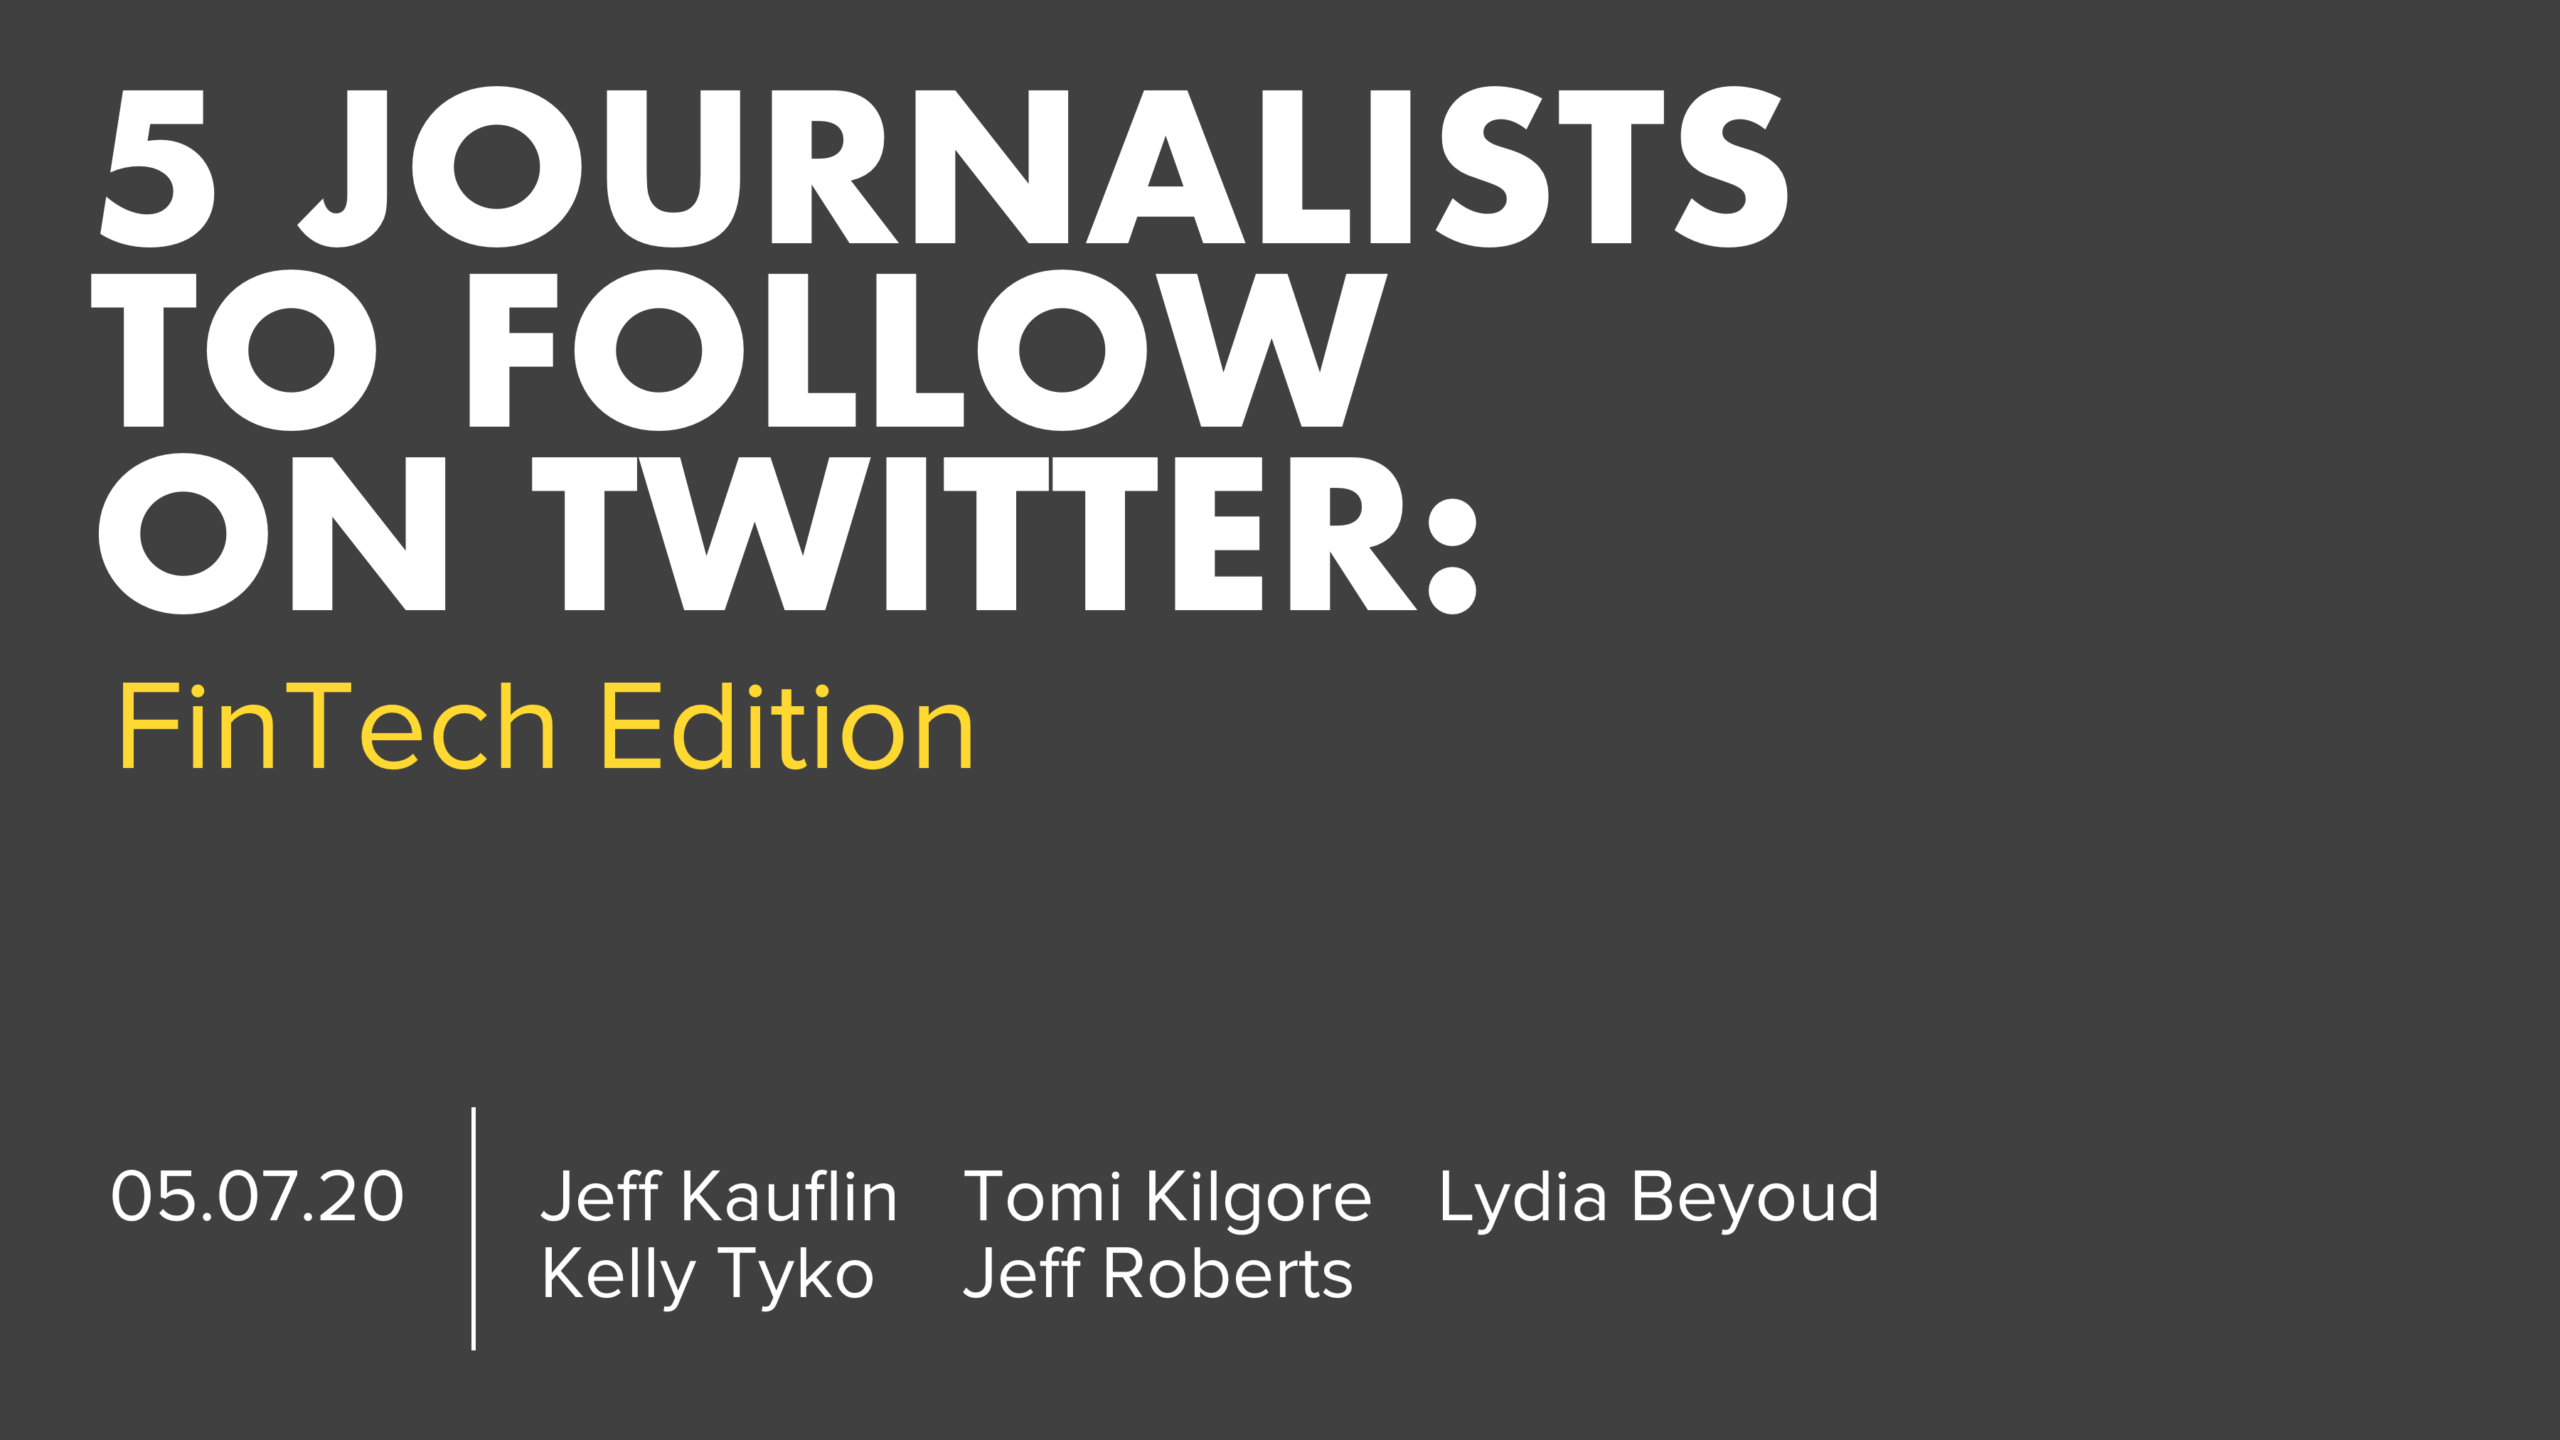 5 FinTech Journalists To Follow On Twitter